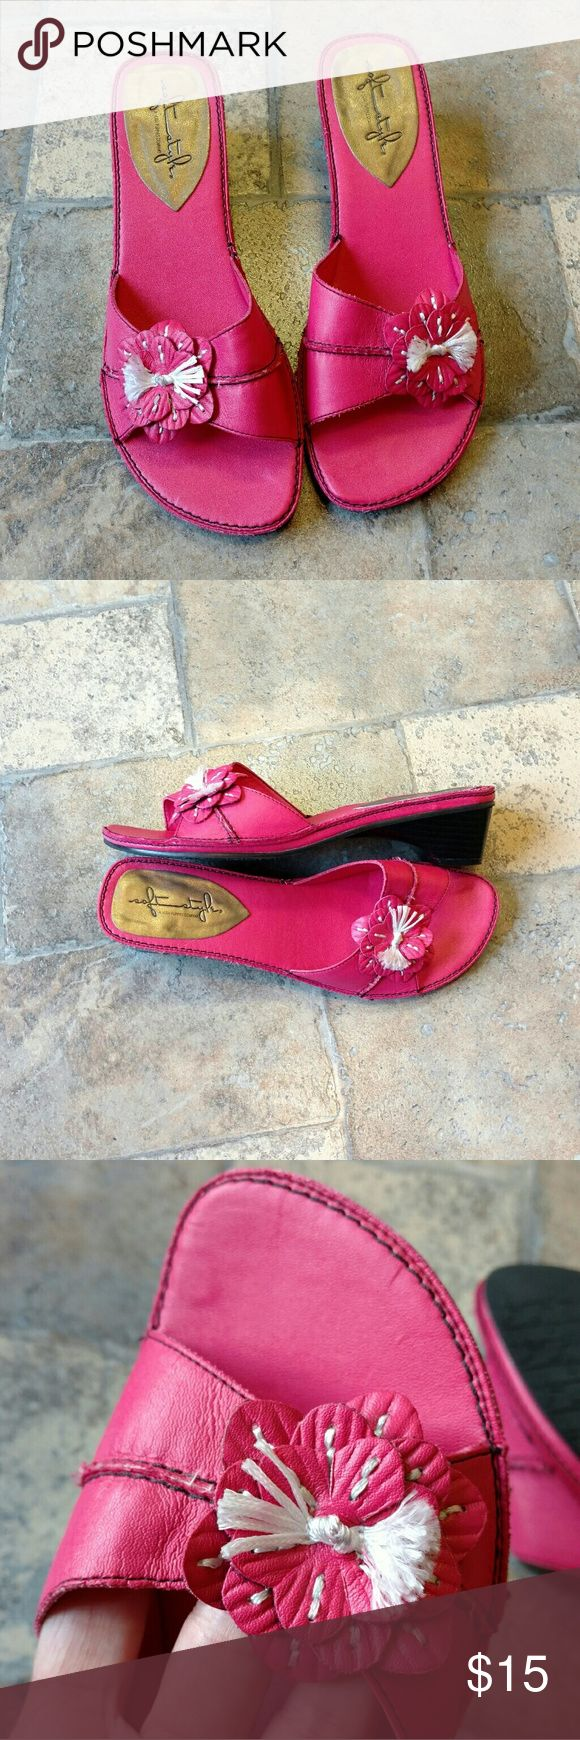 """Soft Style Hush Puppies pink low heel sandals * Soft Style by Hush Puppies * Pink with flower * Great condition - bottoms and insole are super clean * Size 8.5 US * 1.5"""" wedge heel  Any questions, just ask! Hush Puppies Shoes Sandals"""